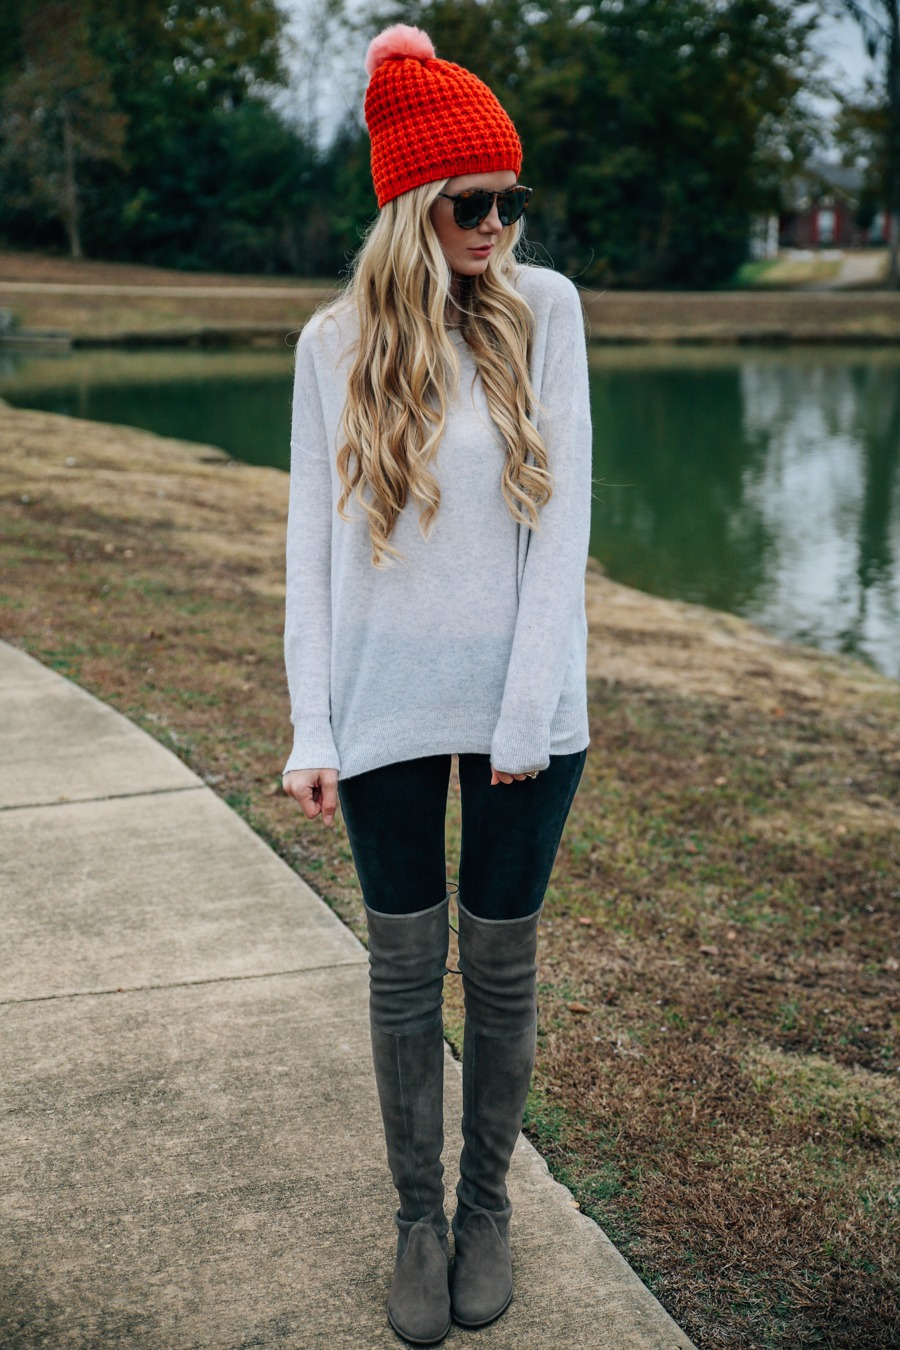 e8e0f10d1d1 ... boots from Stuart Weitzman. Over-The Knees Trend  Amber Fillerup Clark  is wearing her praline over-the